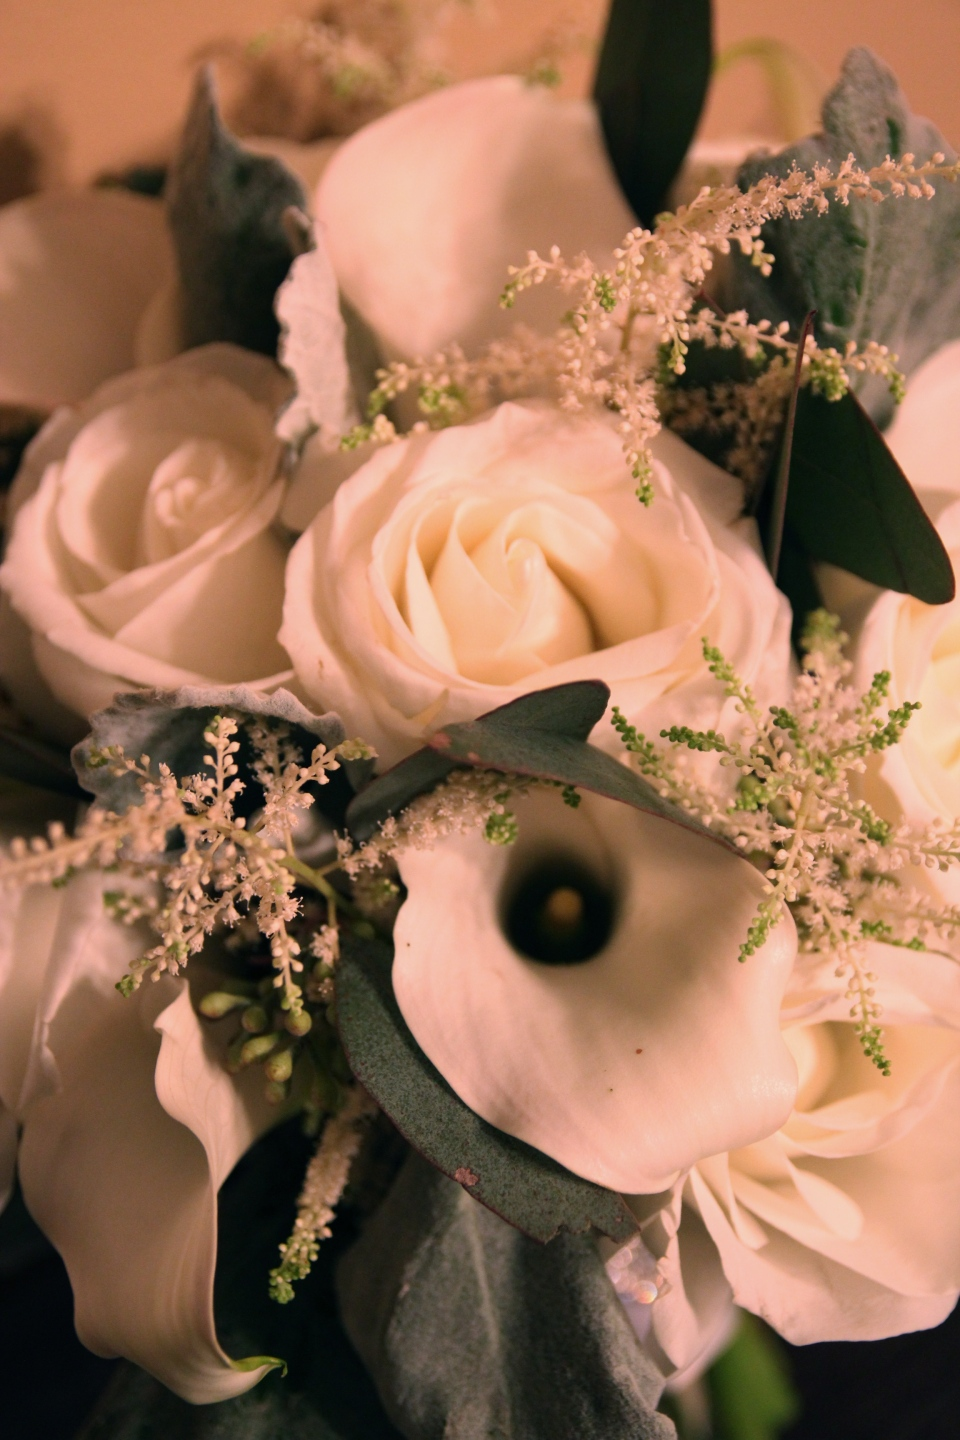 Bouquet detail of roses, astilbe and calla lilies